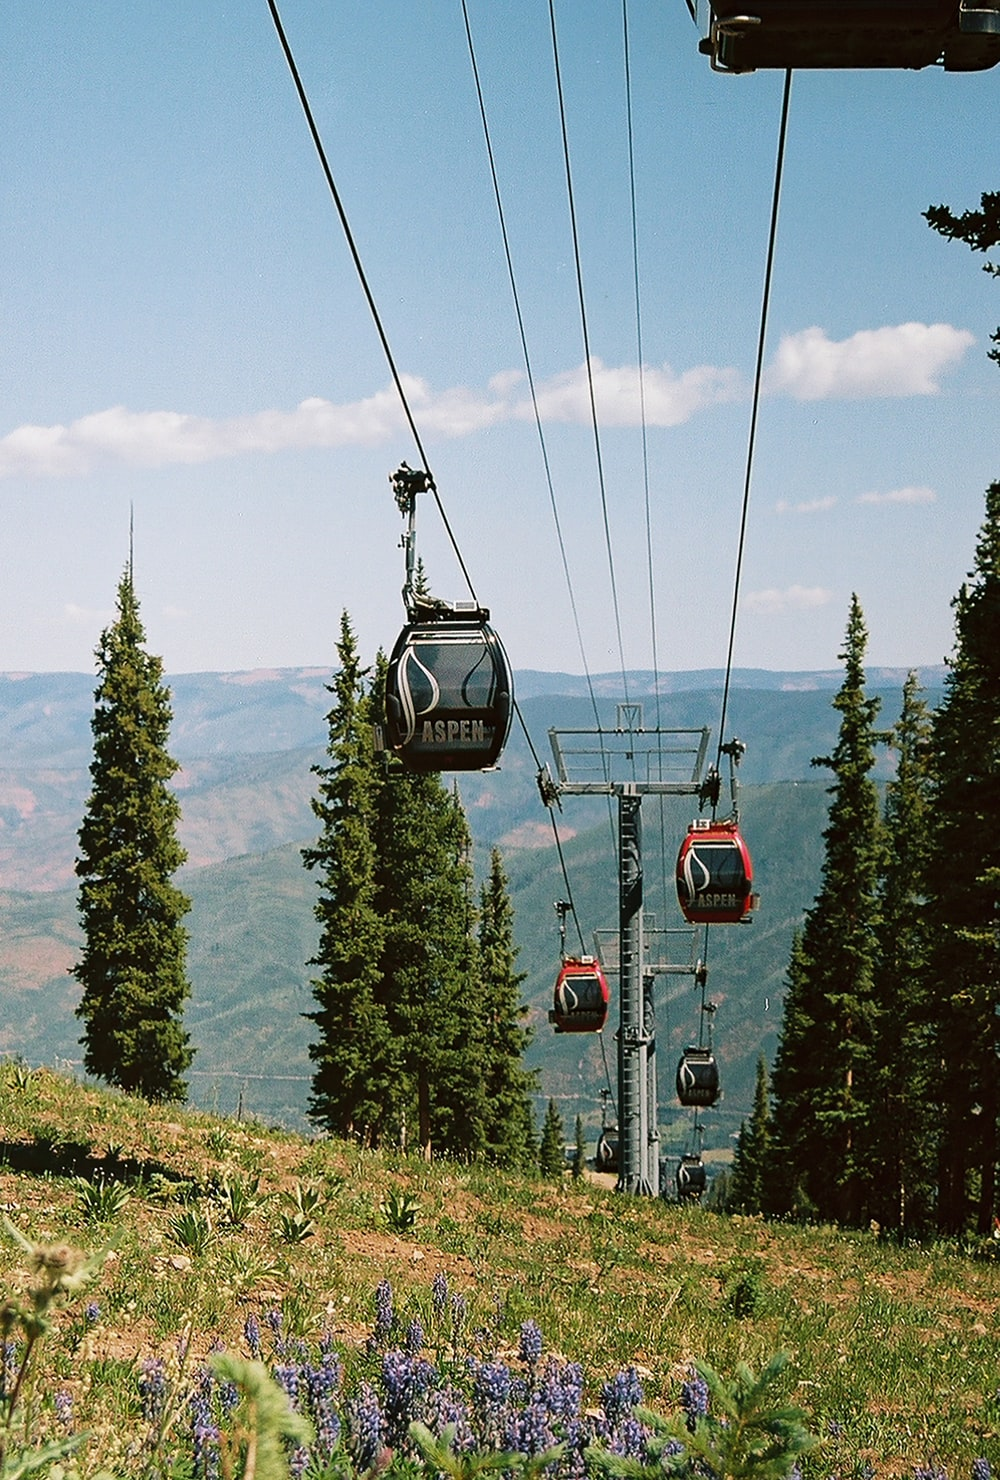 red cable cars over green trees during daytime